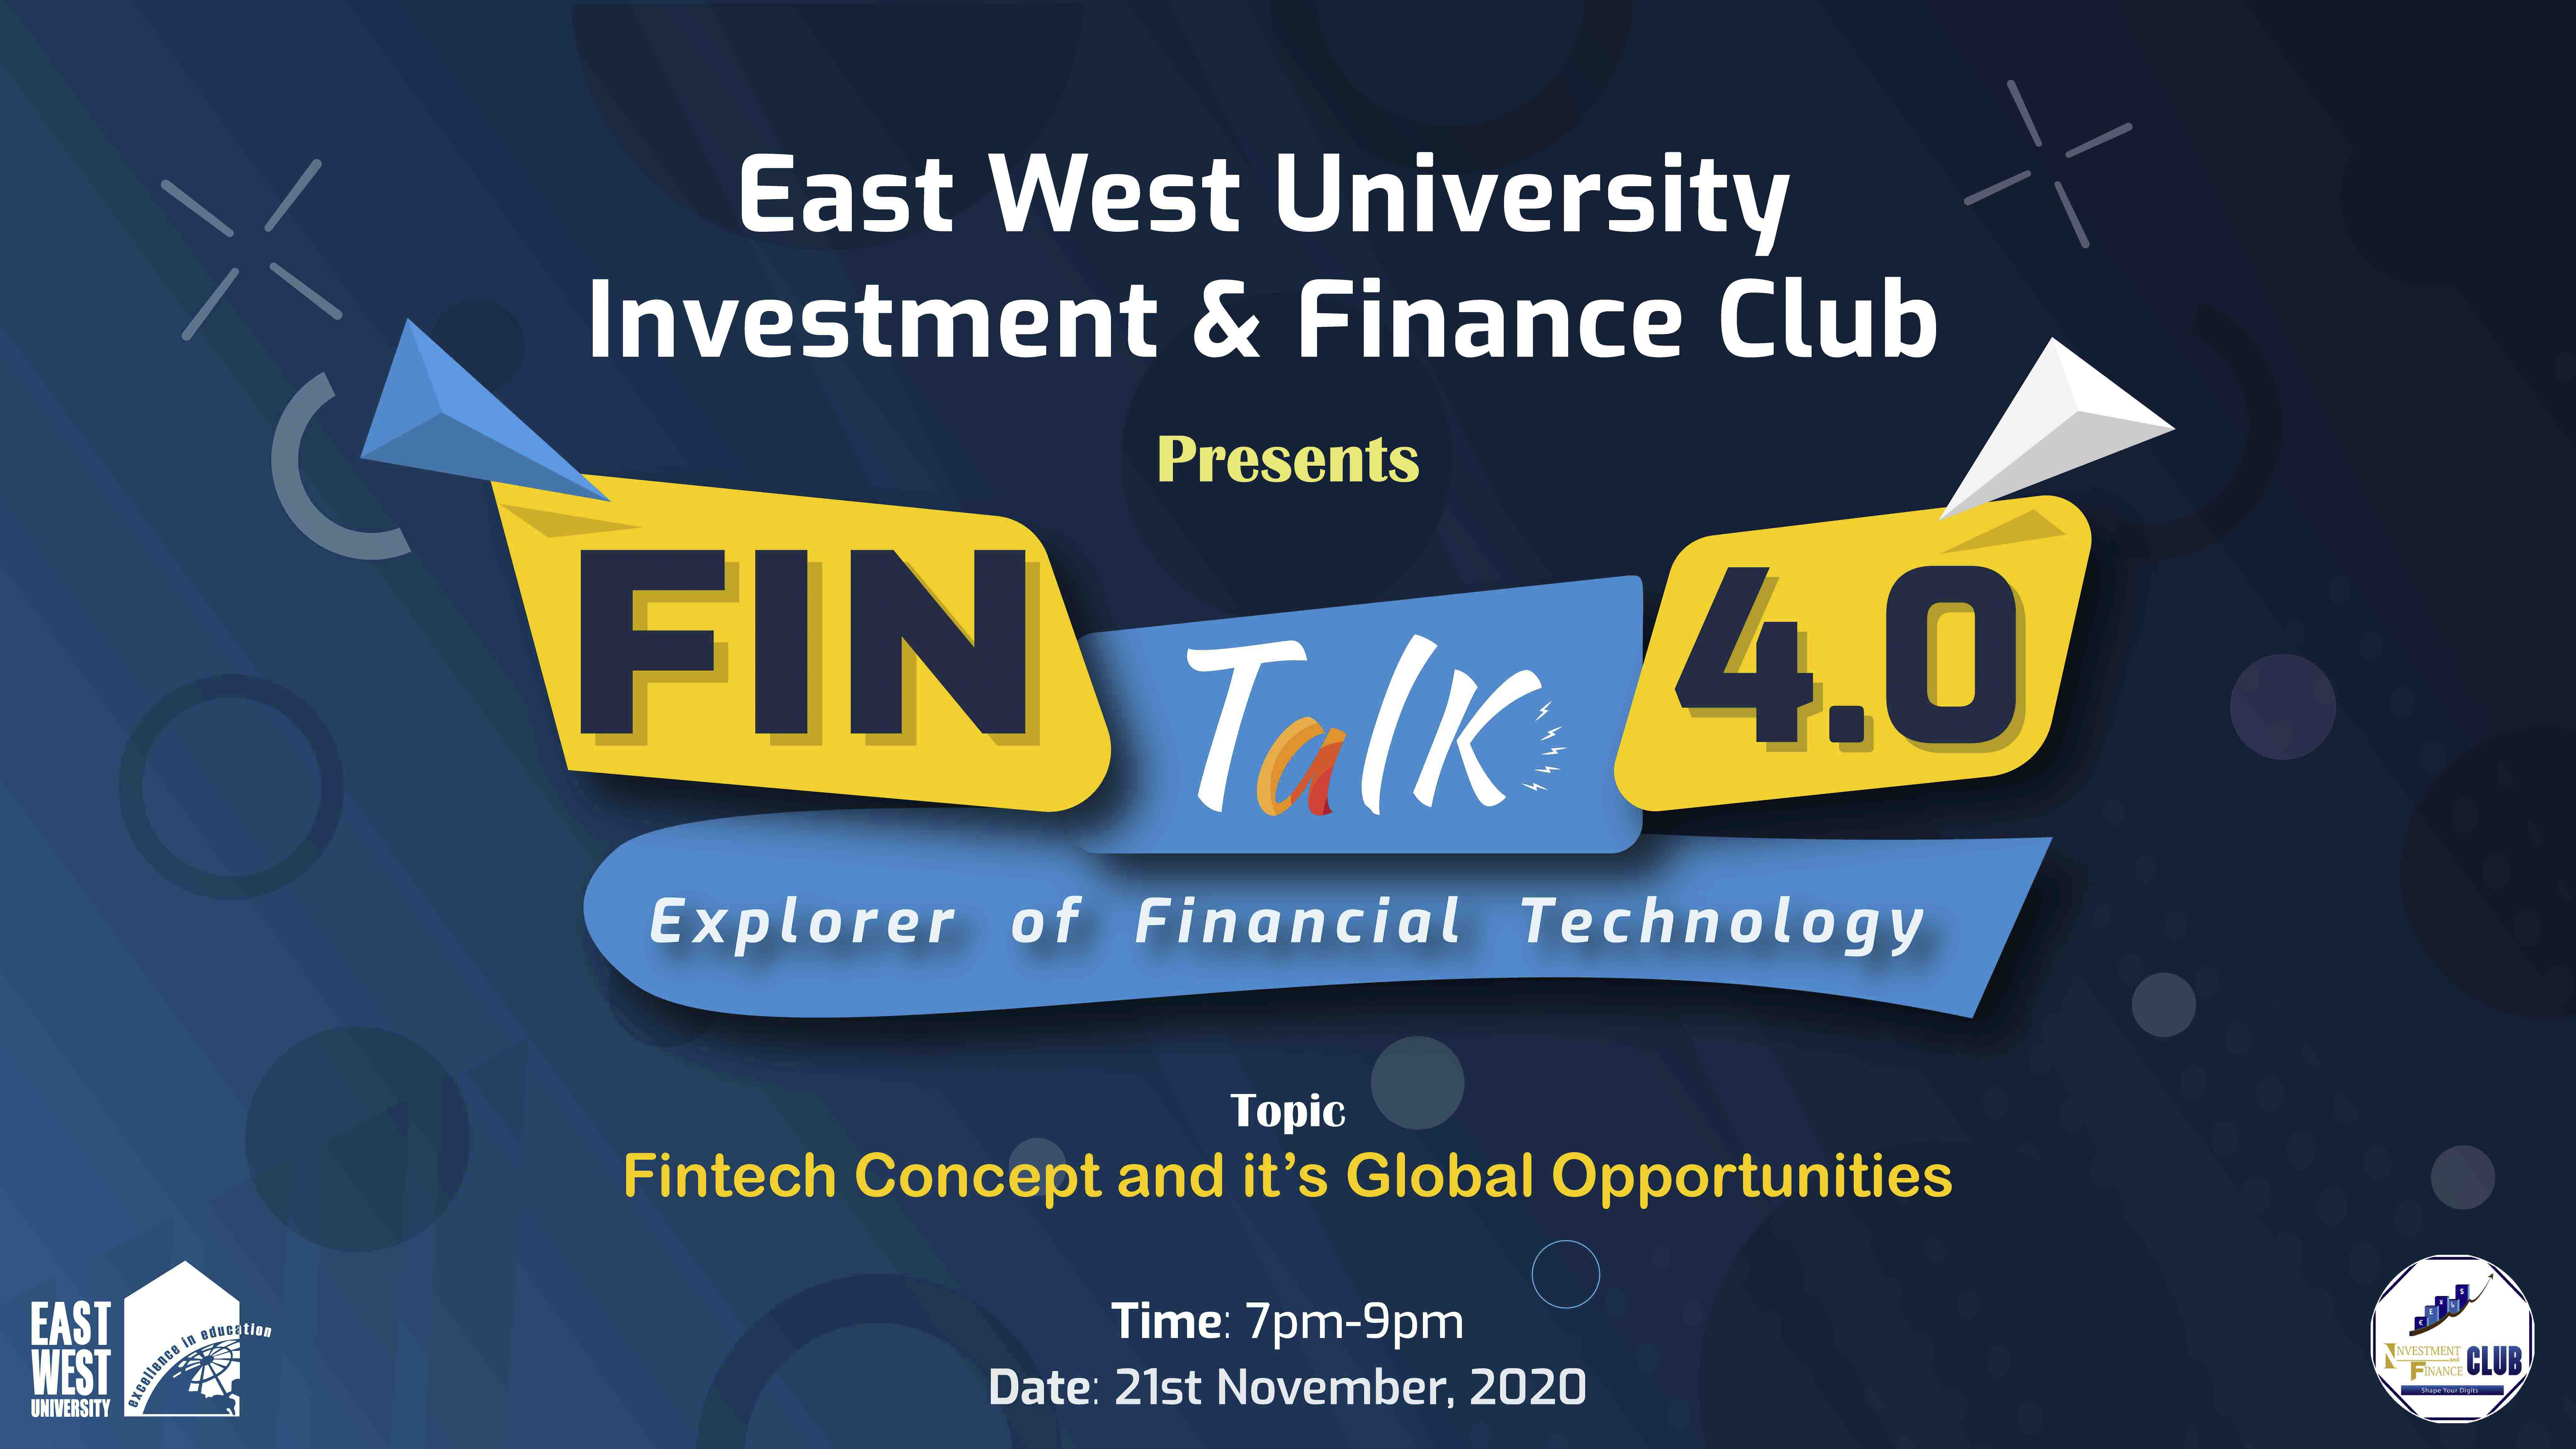 Fintalk 4.0: Explorer of Financial Technology (Fintech Concept and its Global Opportunities)